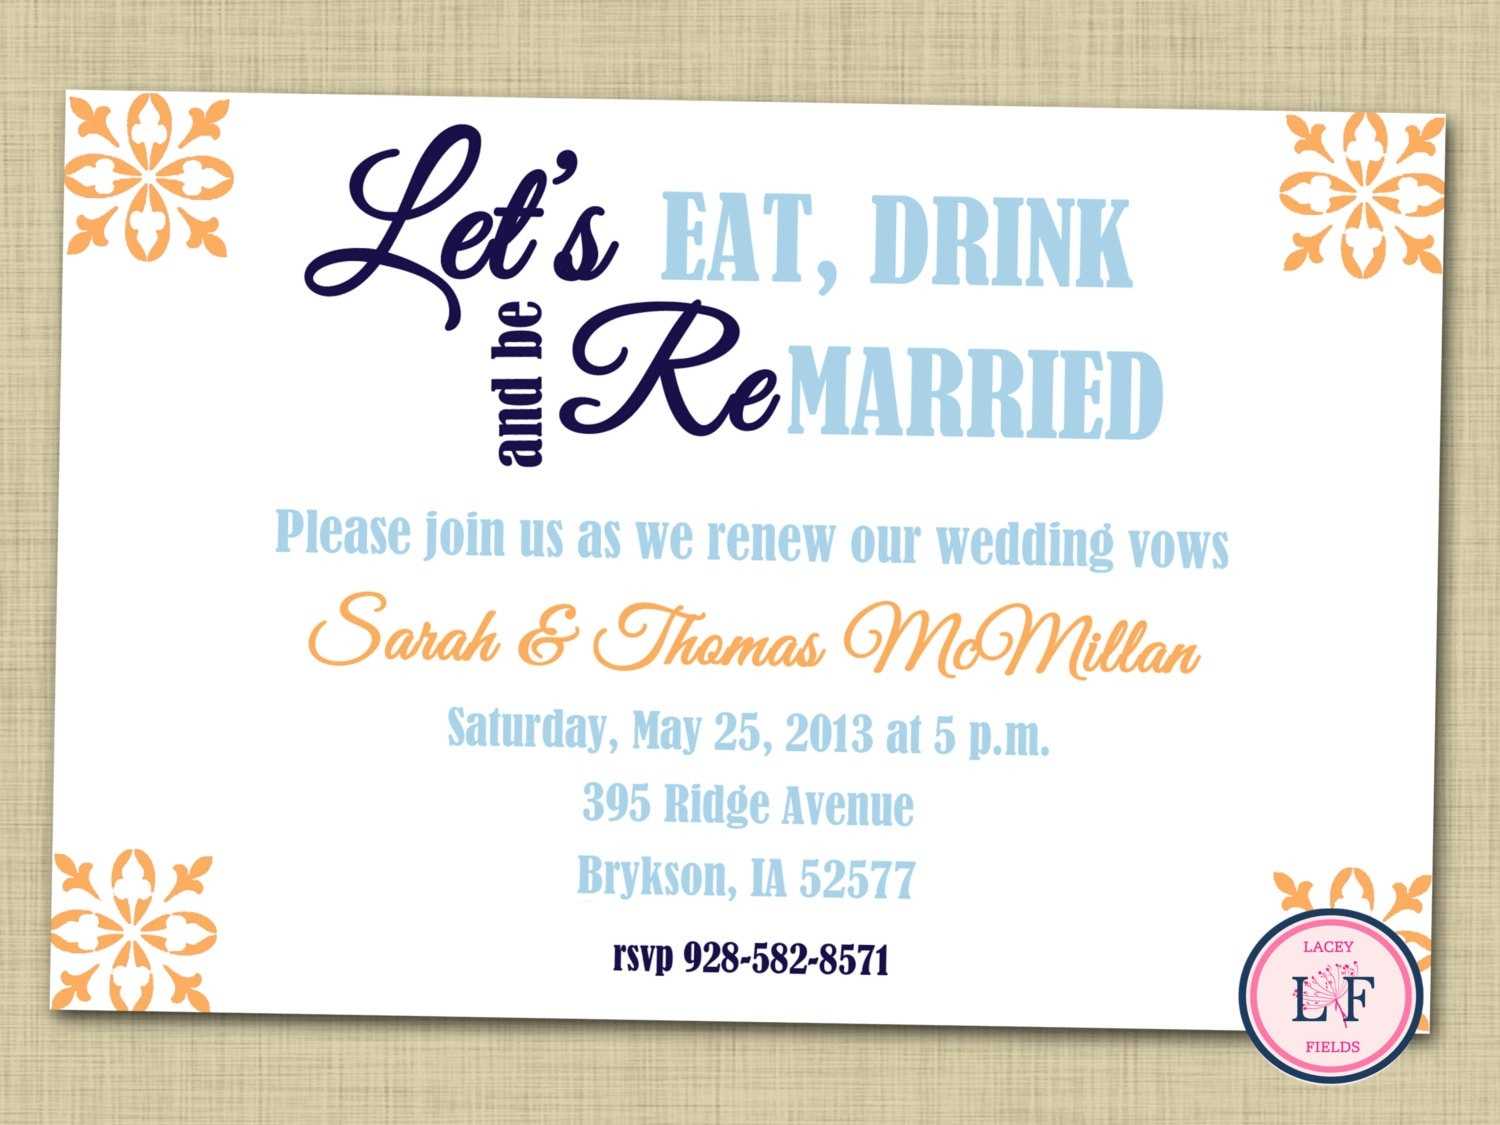 Vow renewal invitation printable vow renewal party by for Free printable wedding vow renewal invitations